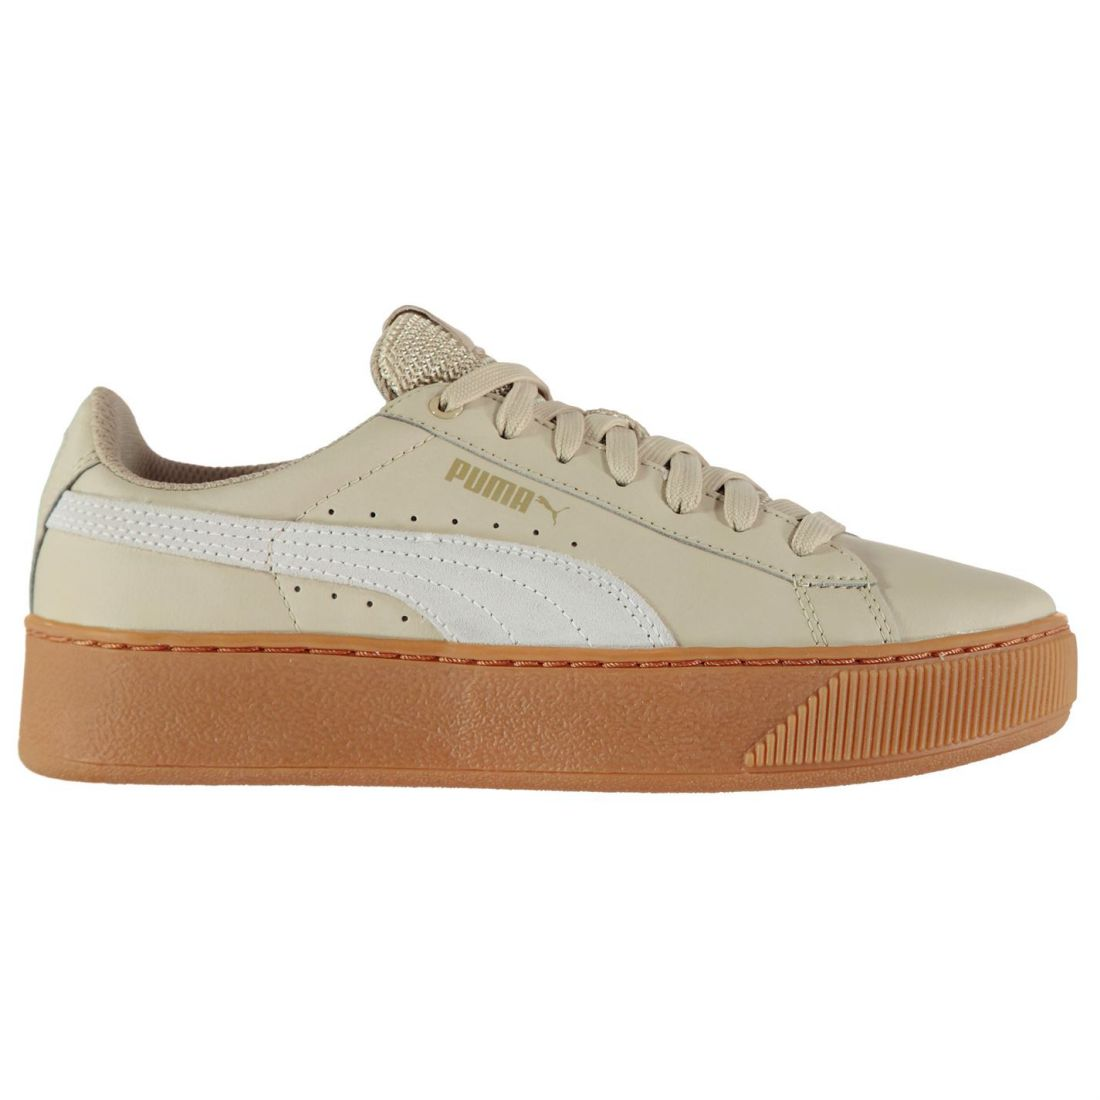 6ee92c788bd5 Puma Ladies Vikky Platform Trainers Shoes Laces Fastened Footwear